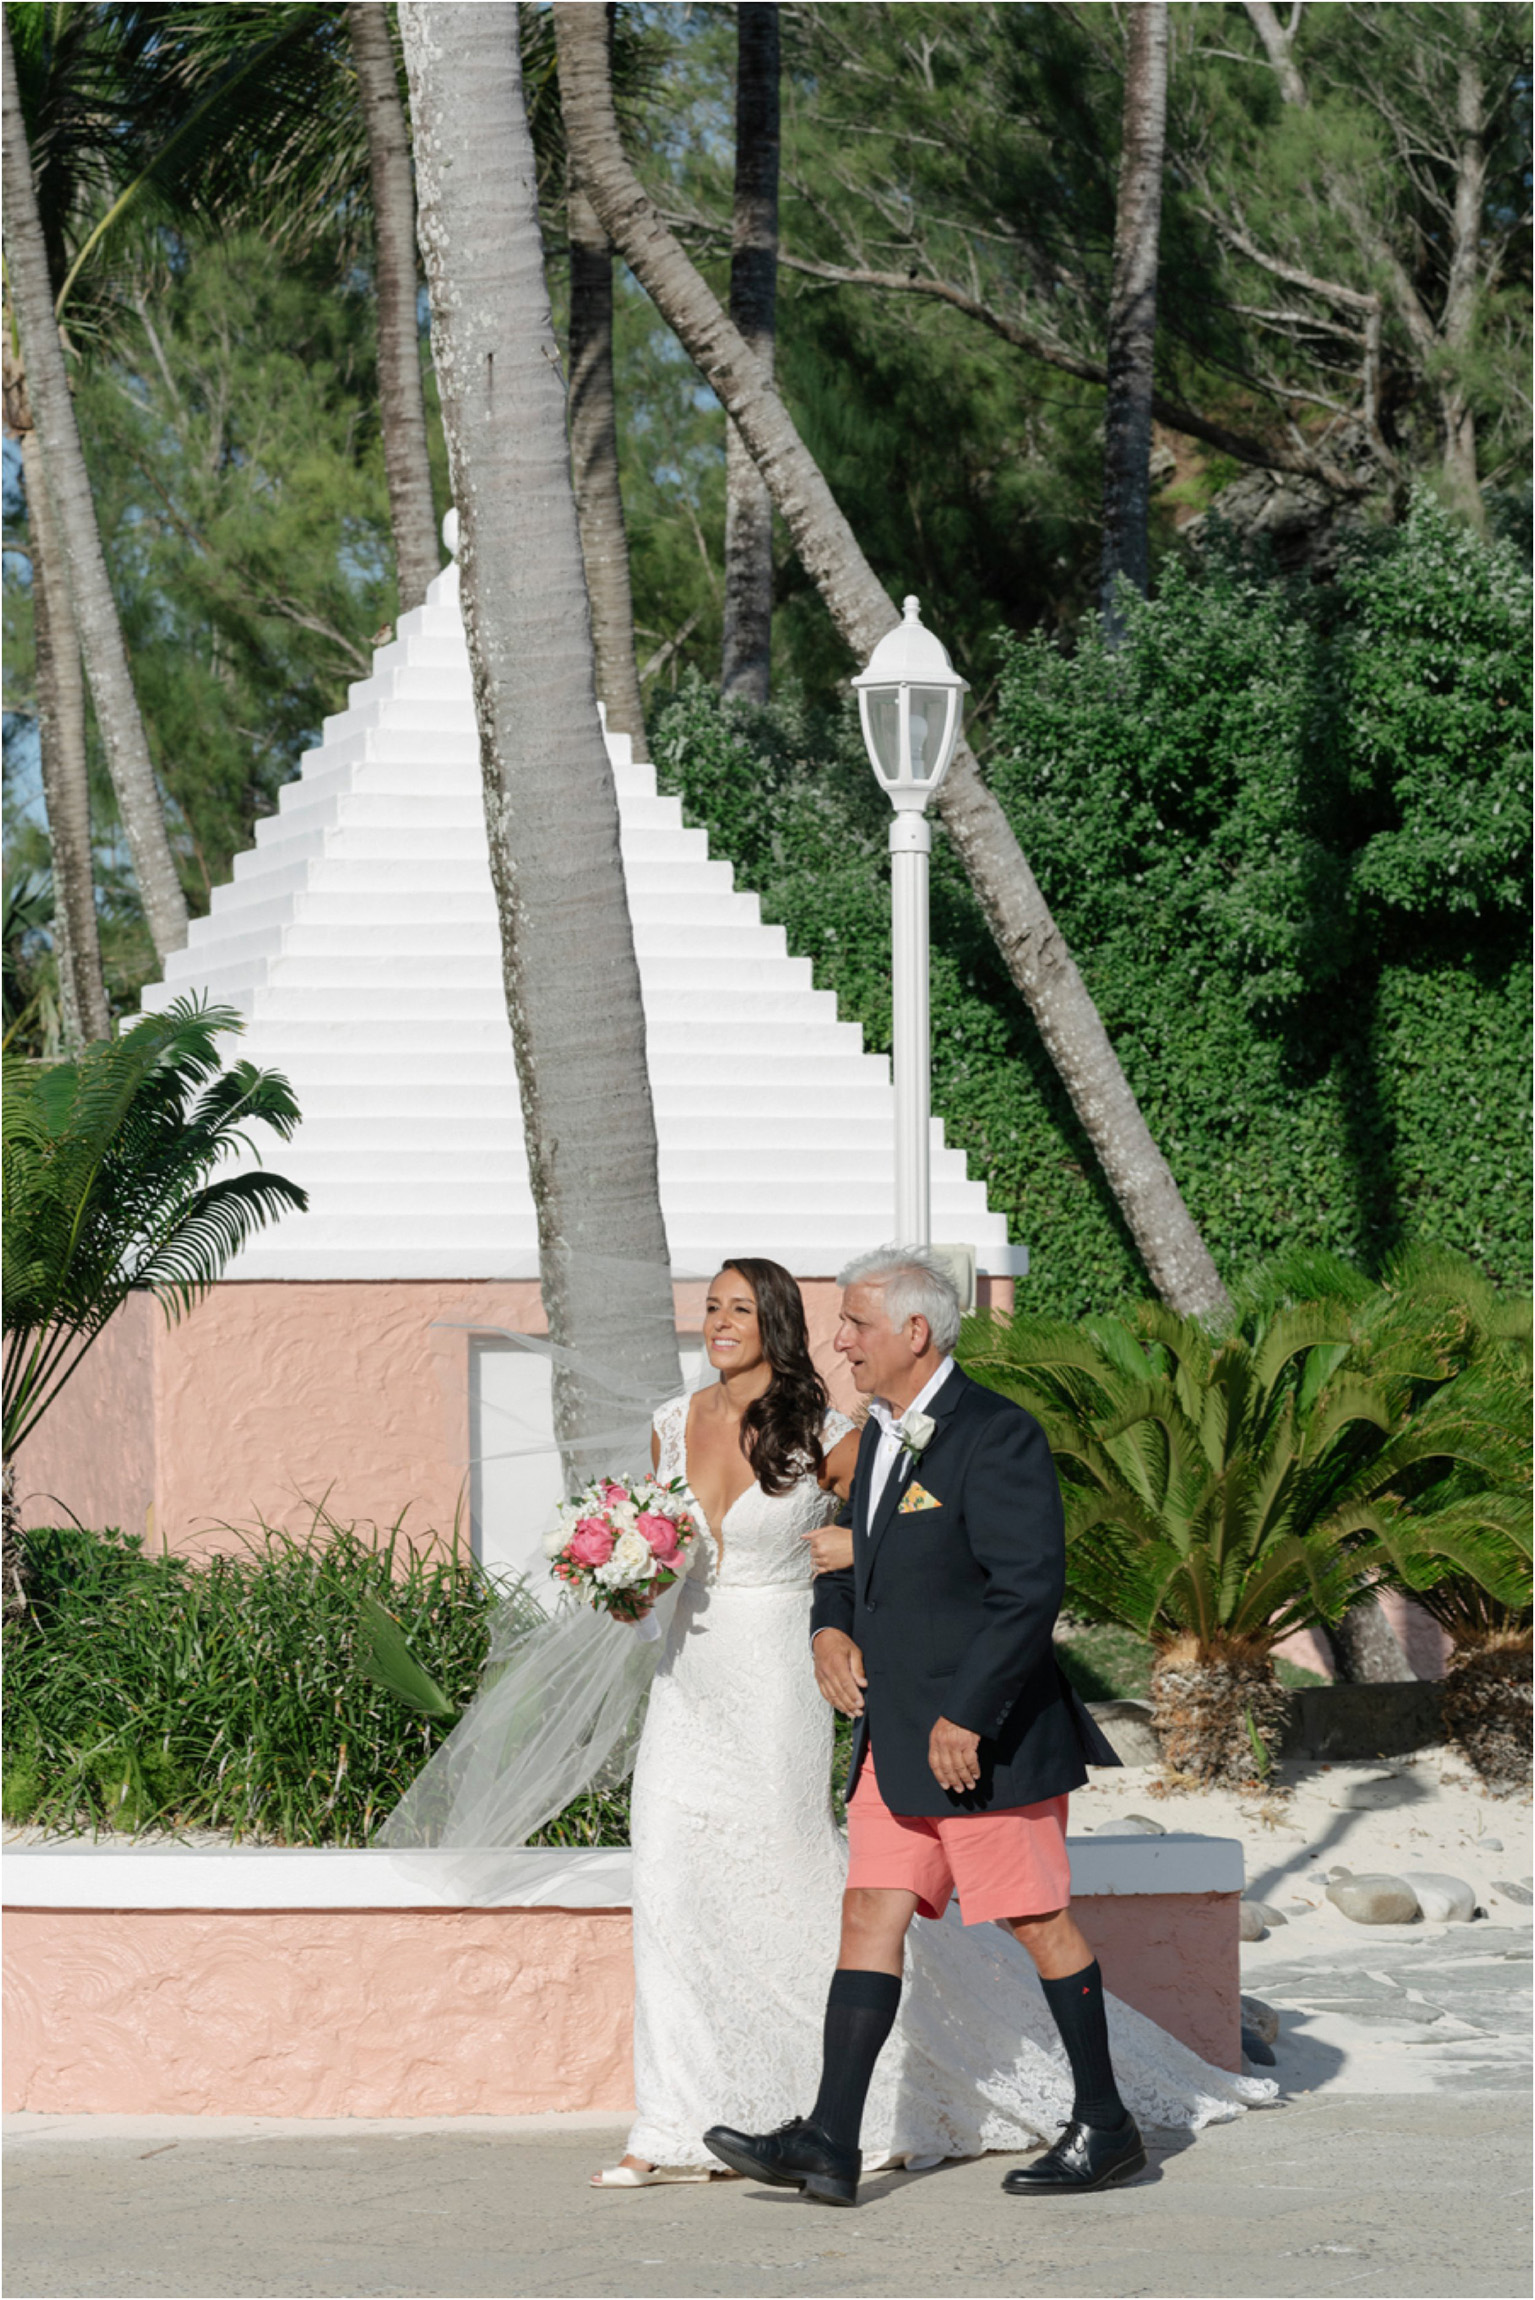 ©FianderFoto_Bermuda Wedding Photographer_Fairmont Southampton_Wedding_Anna_Thomas_045.jpg